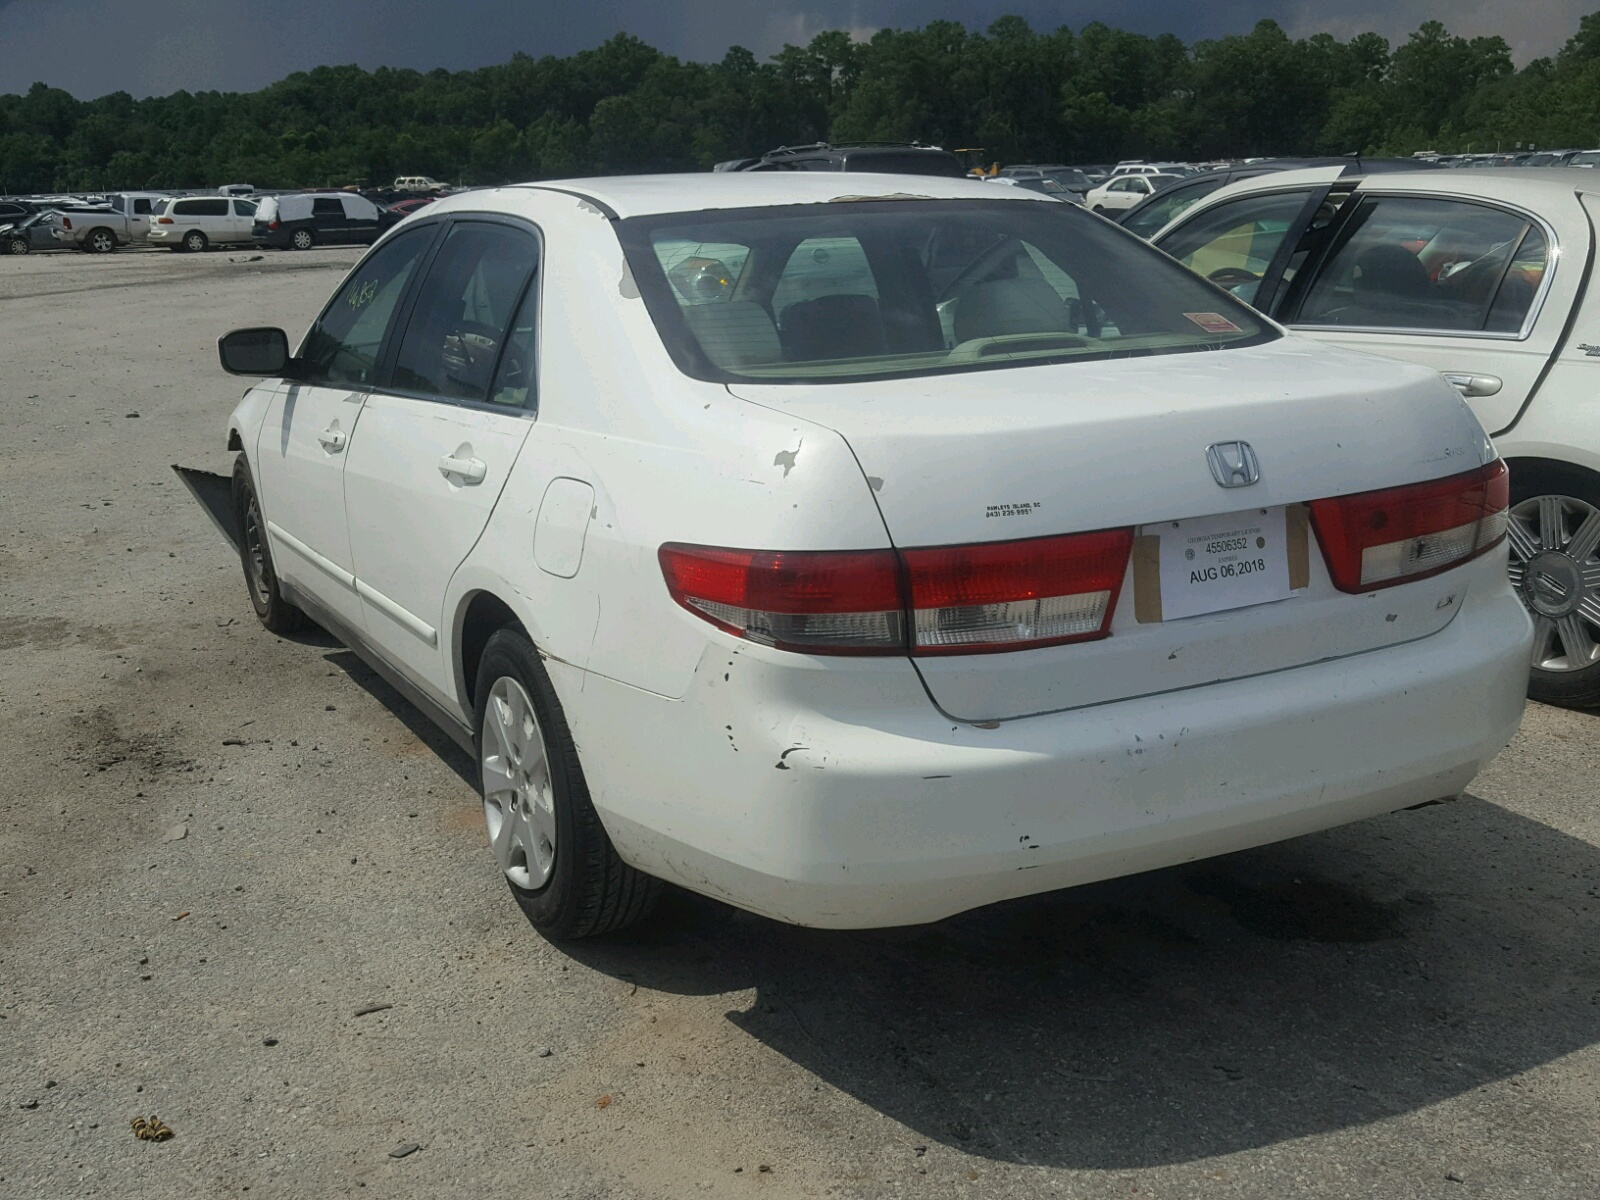 3hgcm563x3g709469 2003 White Honda Accord Lx On Sale In Ga Tail Light 24l Angle View